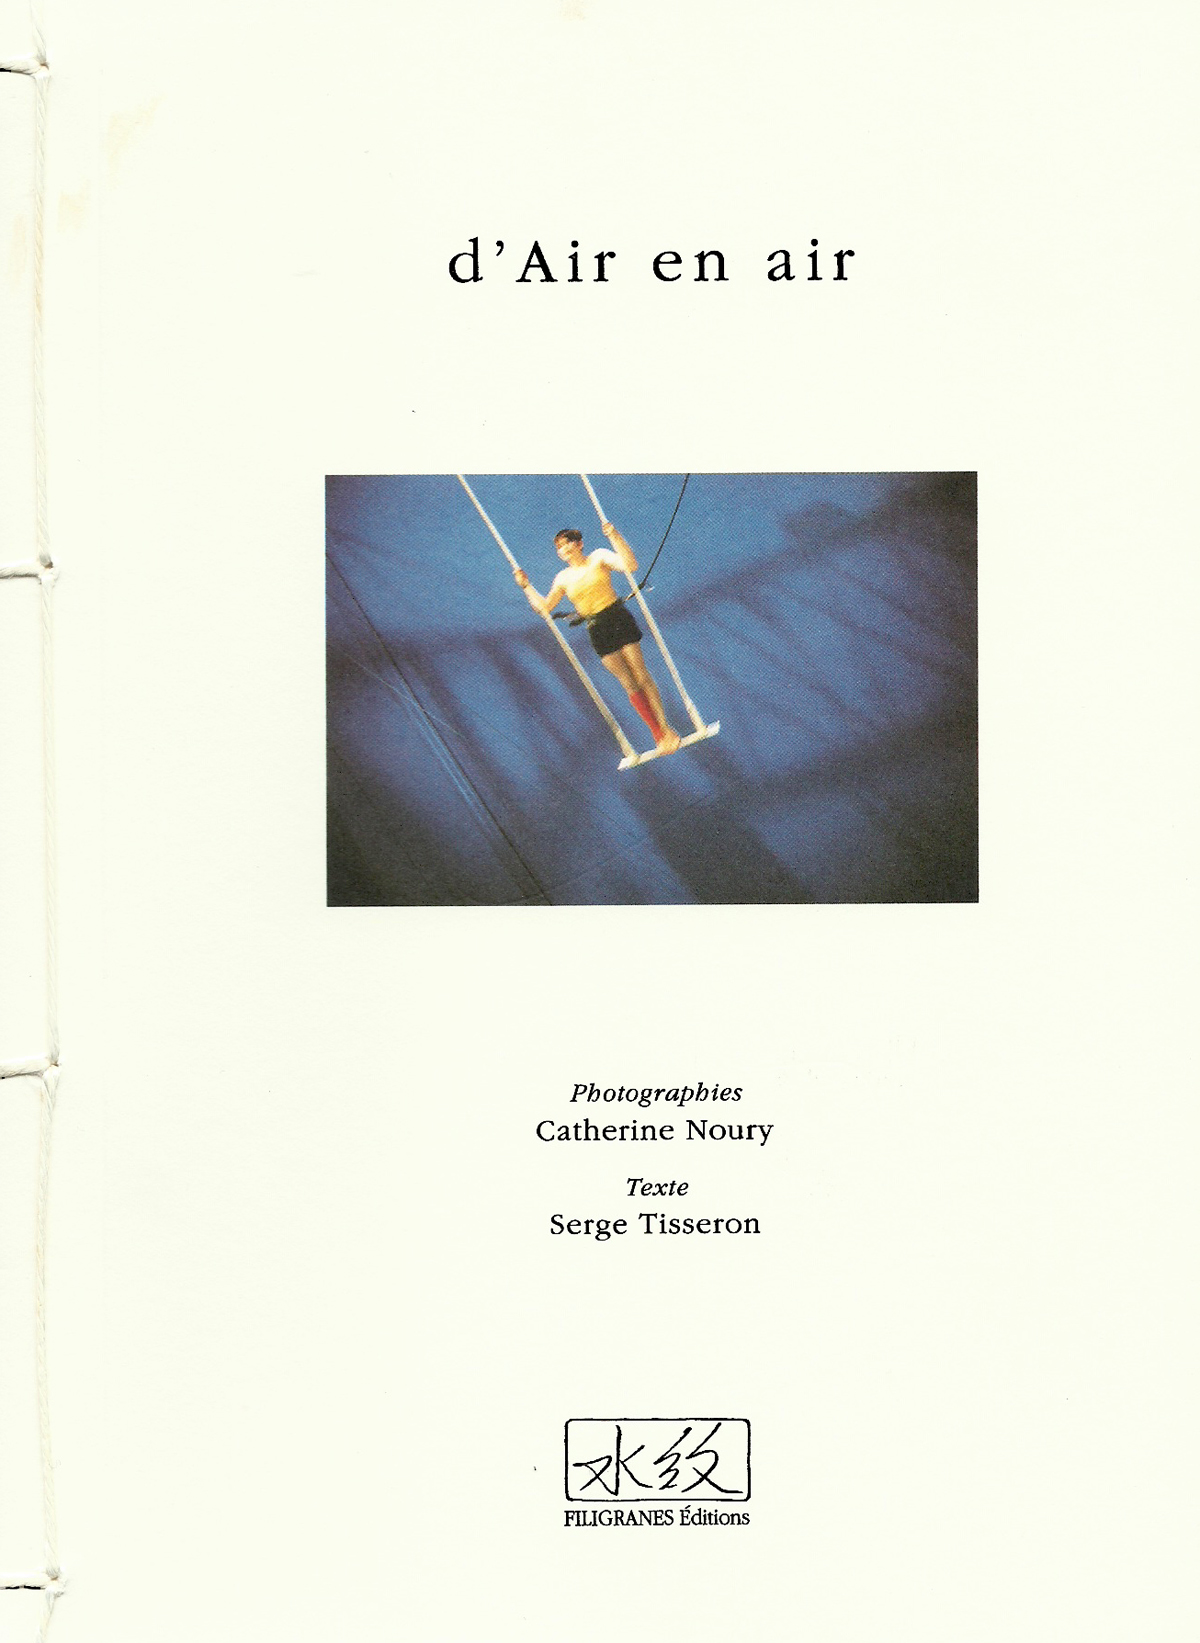 D'air en air, photographies de Catherine Noury